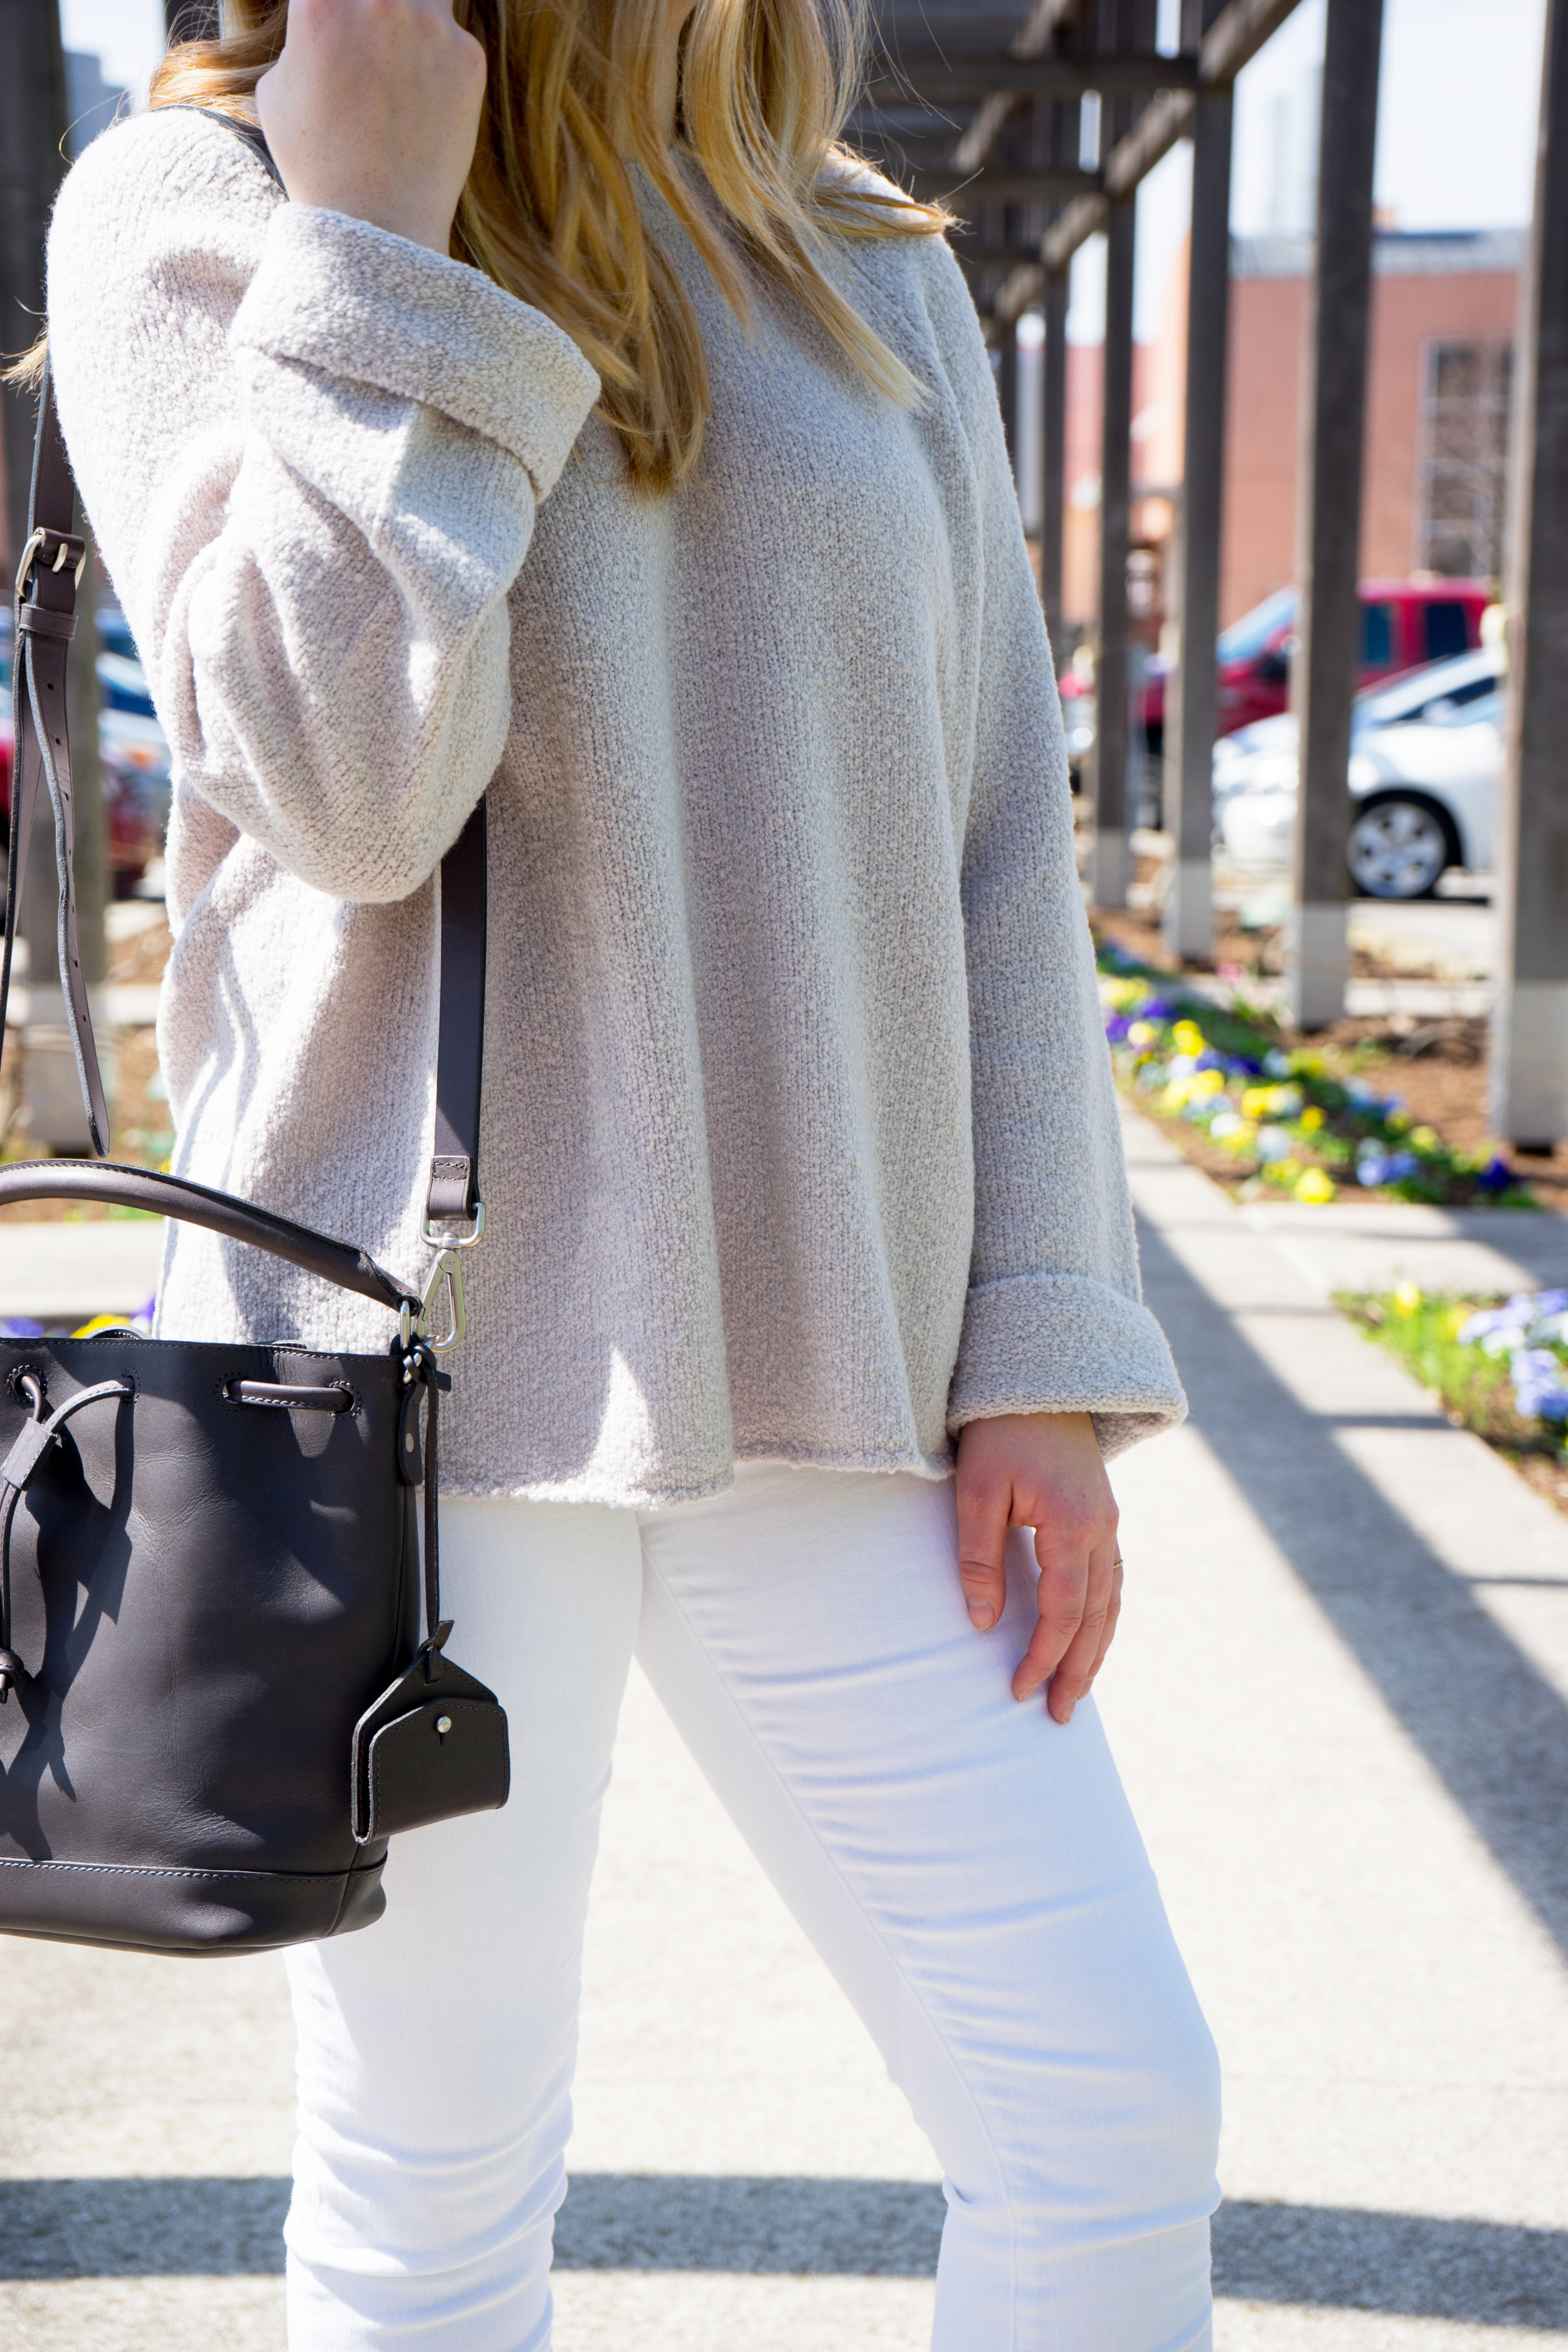 Maggie a la Mode - Vince Knit Crewneck Sweater Sand, Madewell white jeans, Steve Madden Shanna heels, Madewell Lafayette Bucket Bag